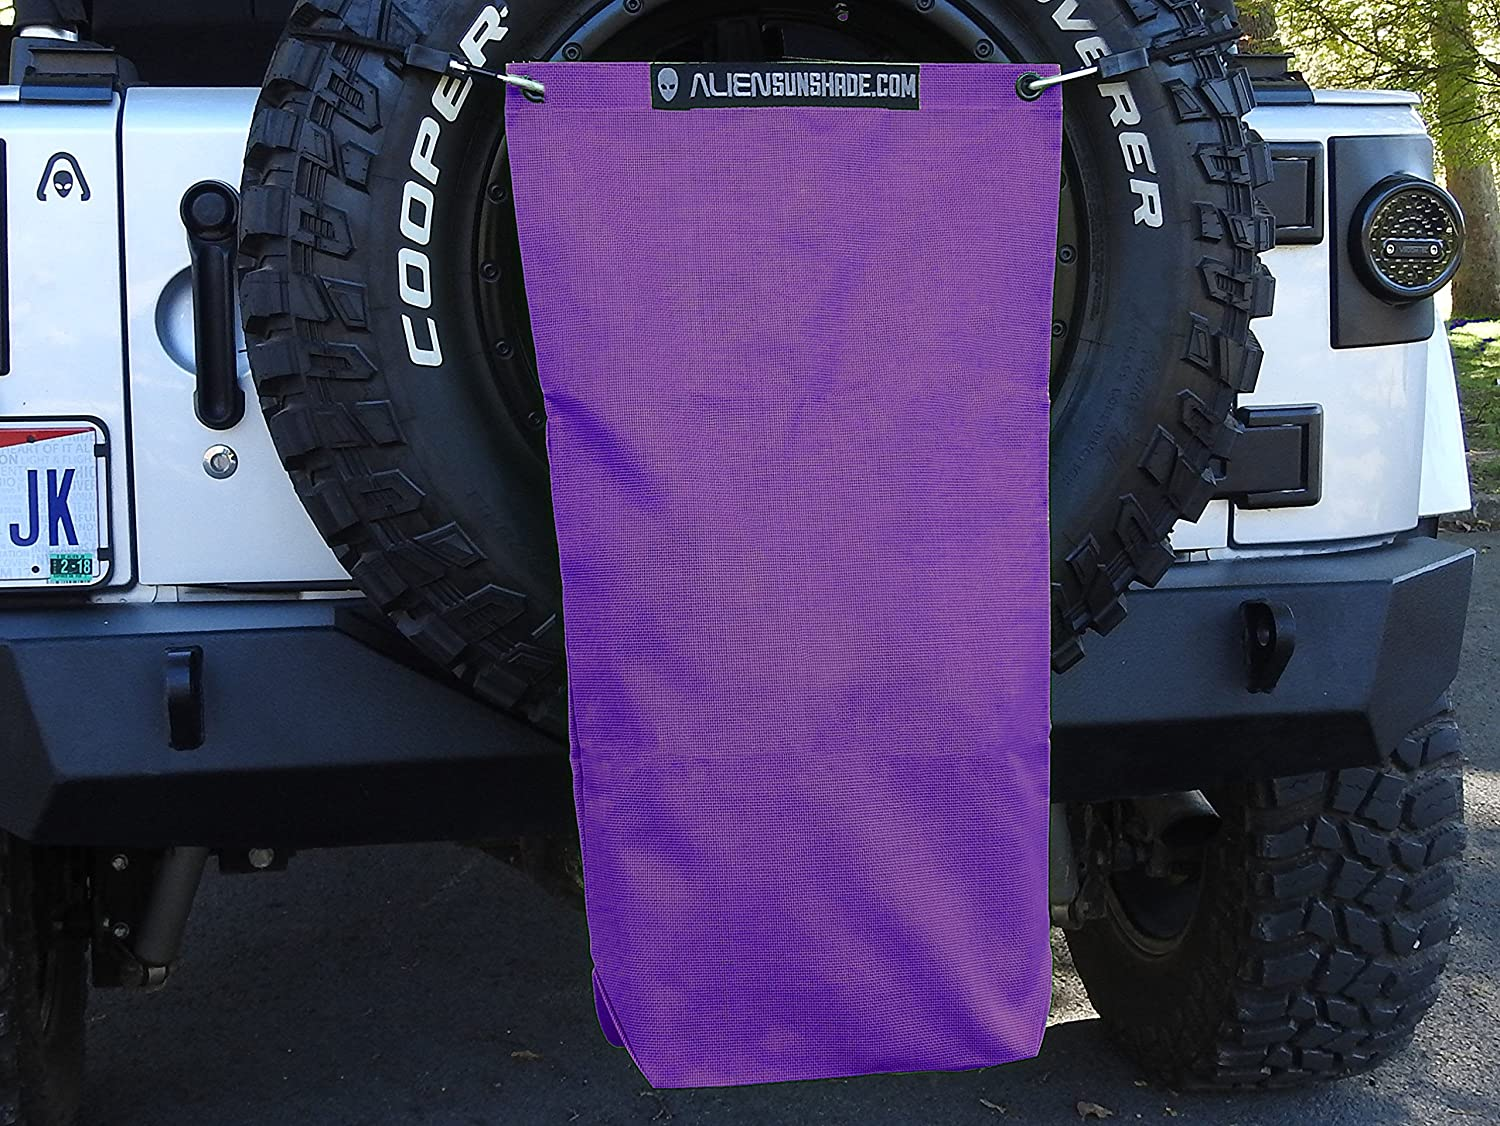 """Includes 48/"""" Carabiner Bungee ALIEN SUNSHADE Jeep Wrangler Mesh RubiSack Exterior Storage Bag for Trash or Trail Gear with 10 Year Warranty Royal Purple"""